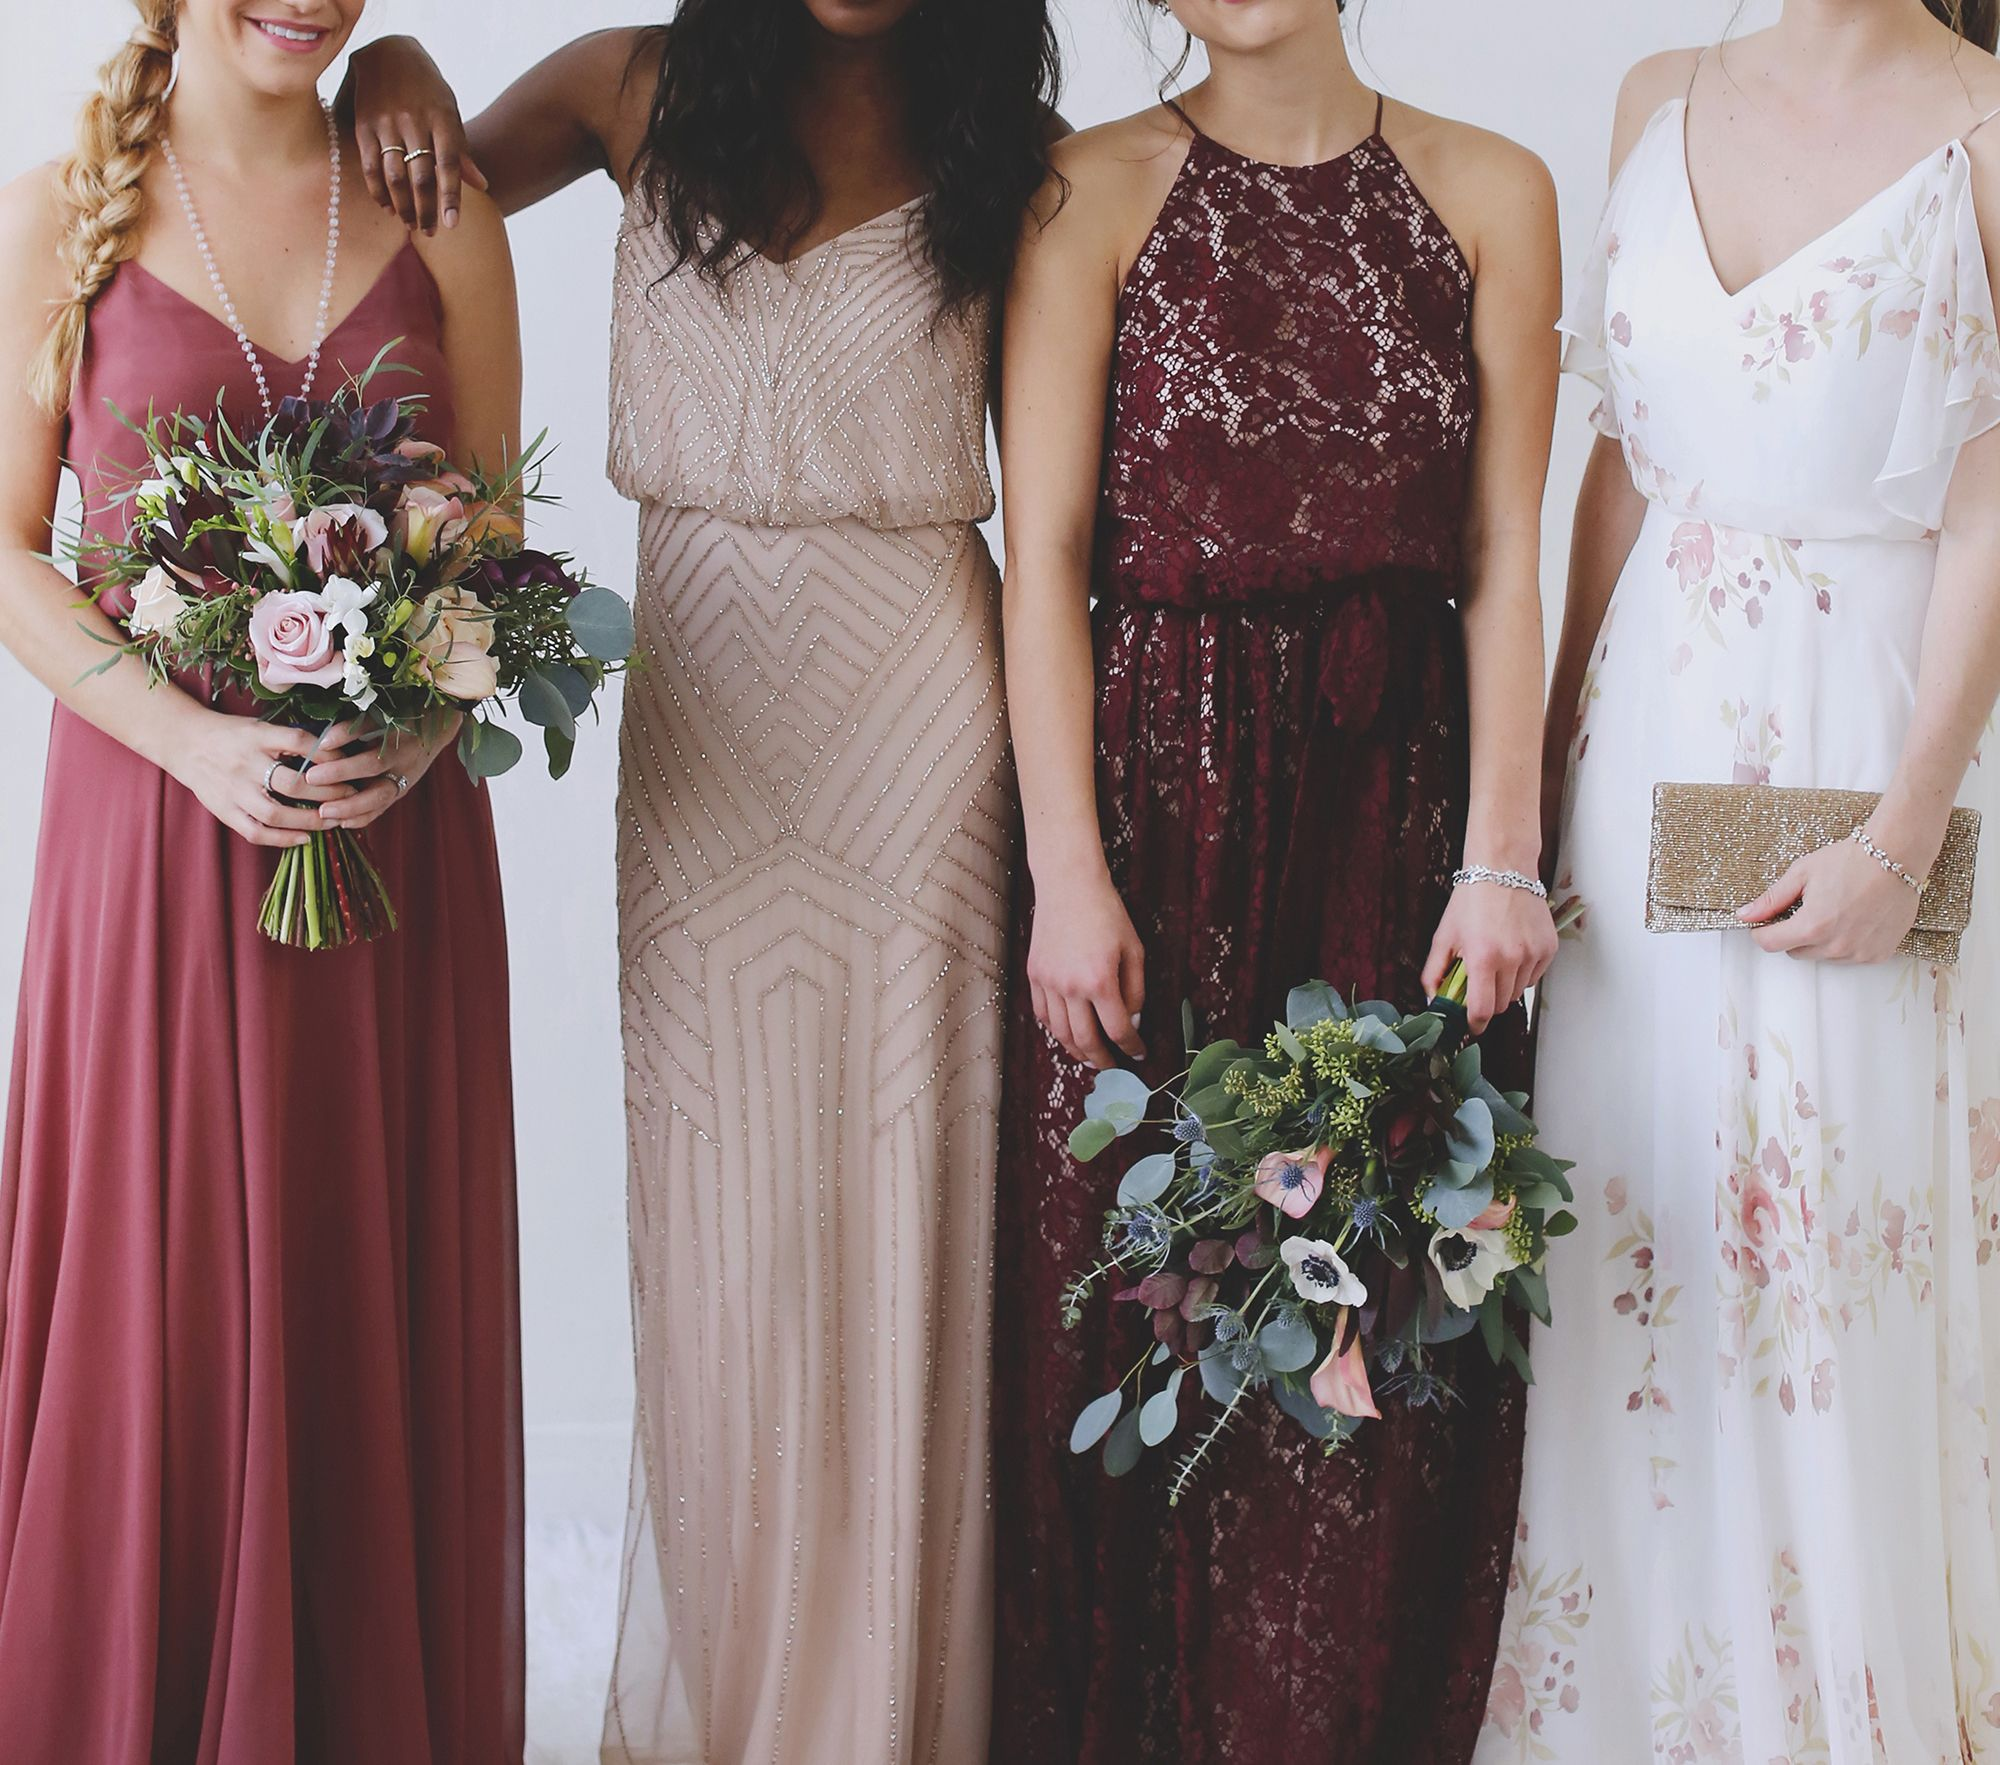 Hochzeit Farben How To Style Mismatched Bridesmaid Dresses Mary 39s